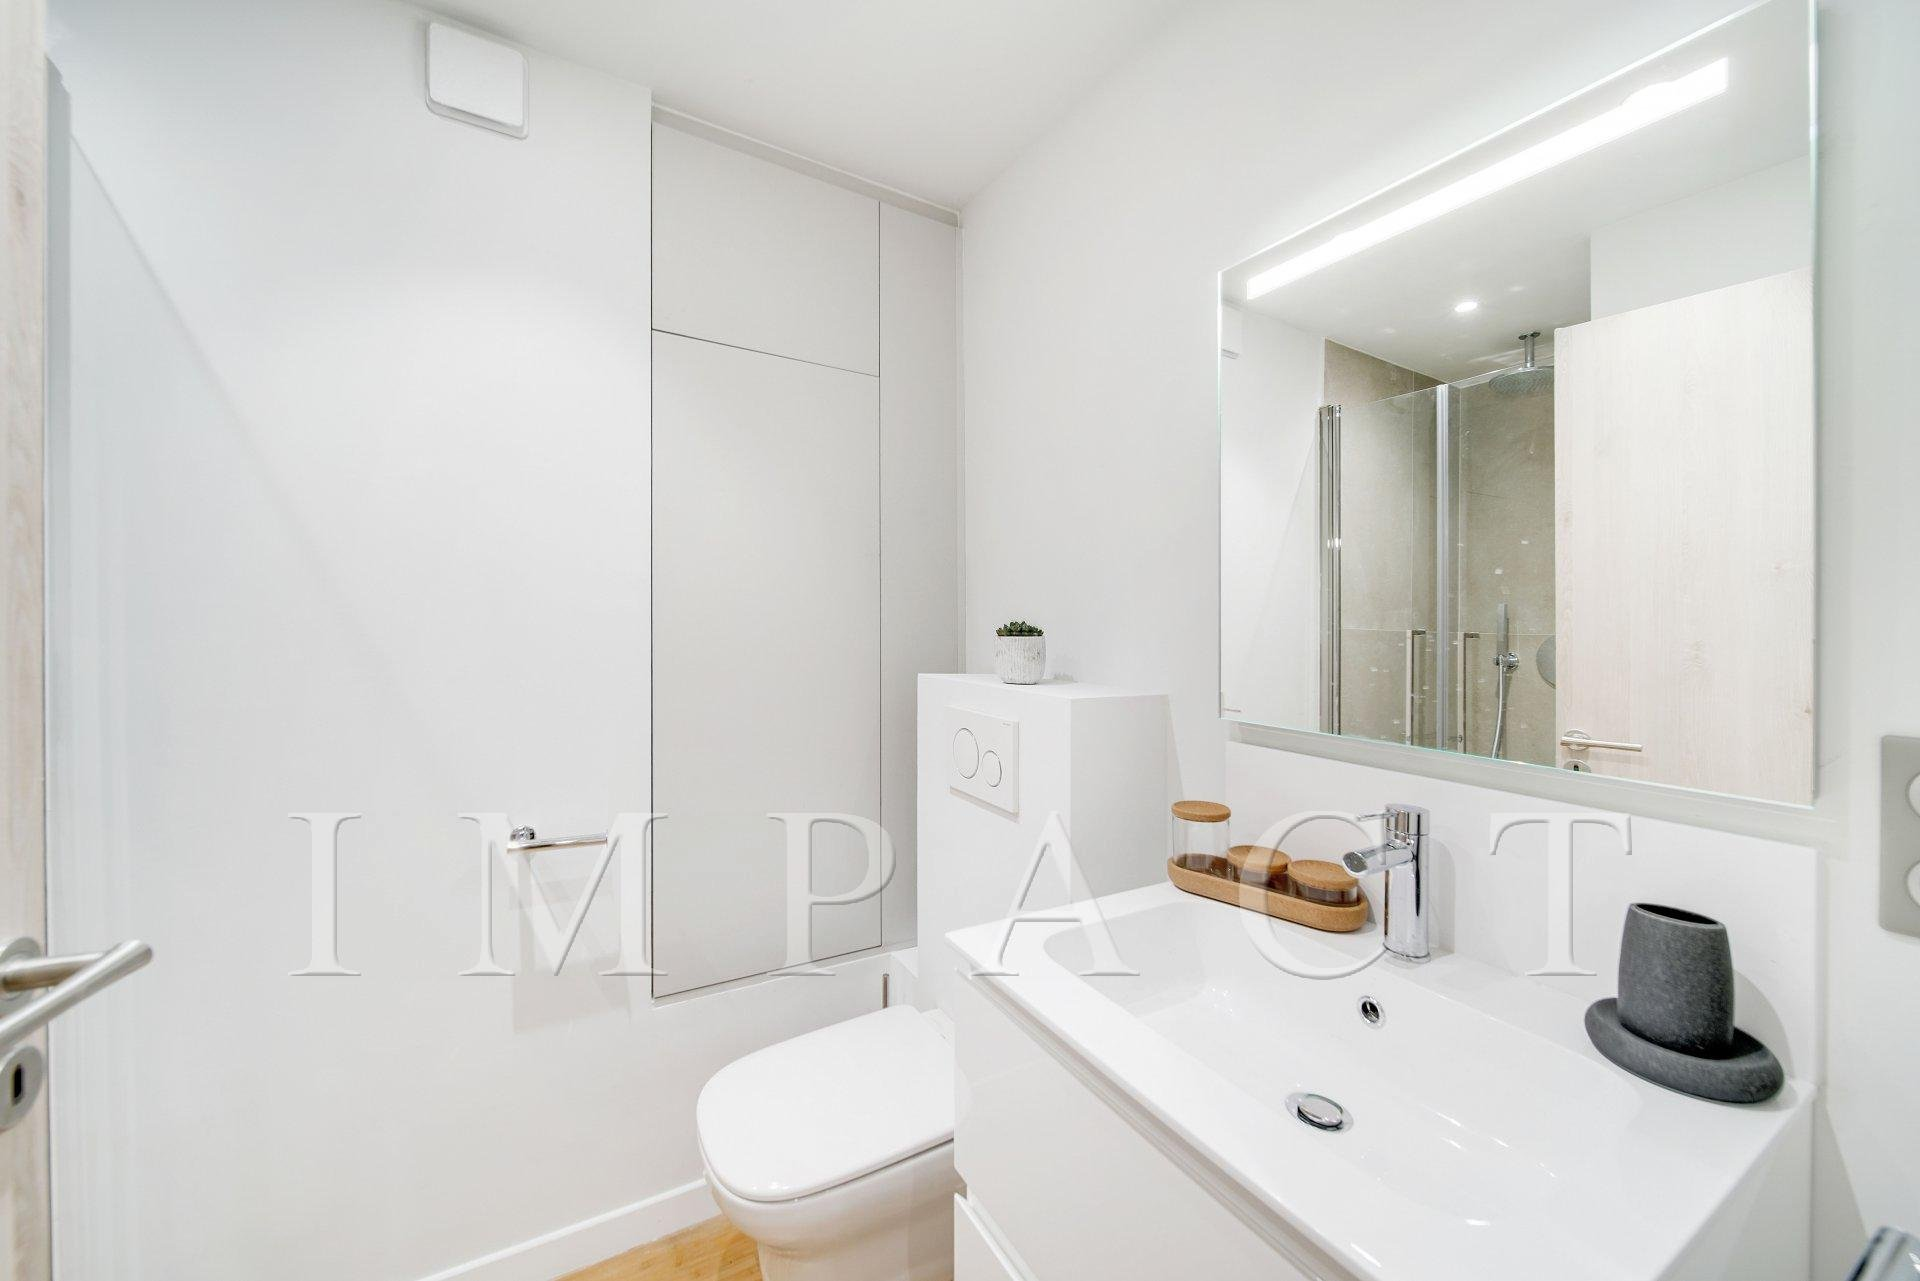 1 bedroom apartment to rent in Cannes city center